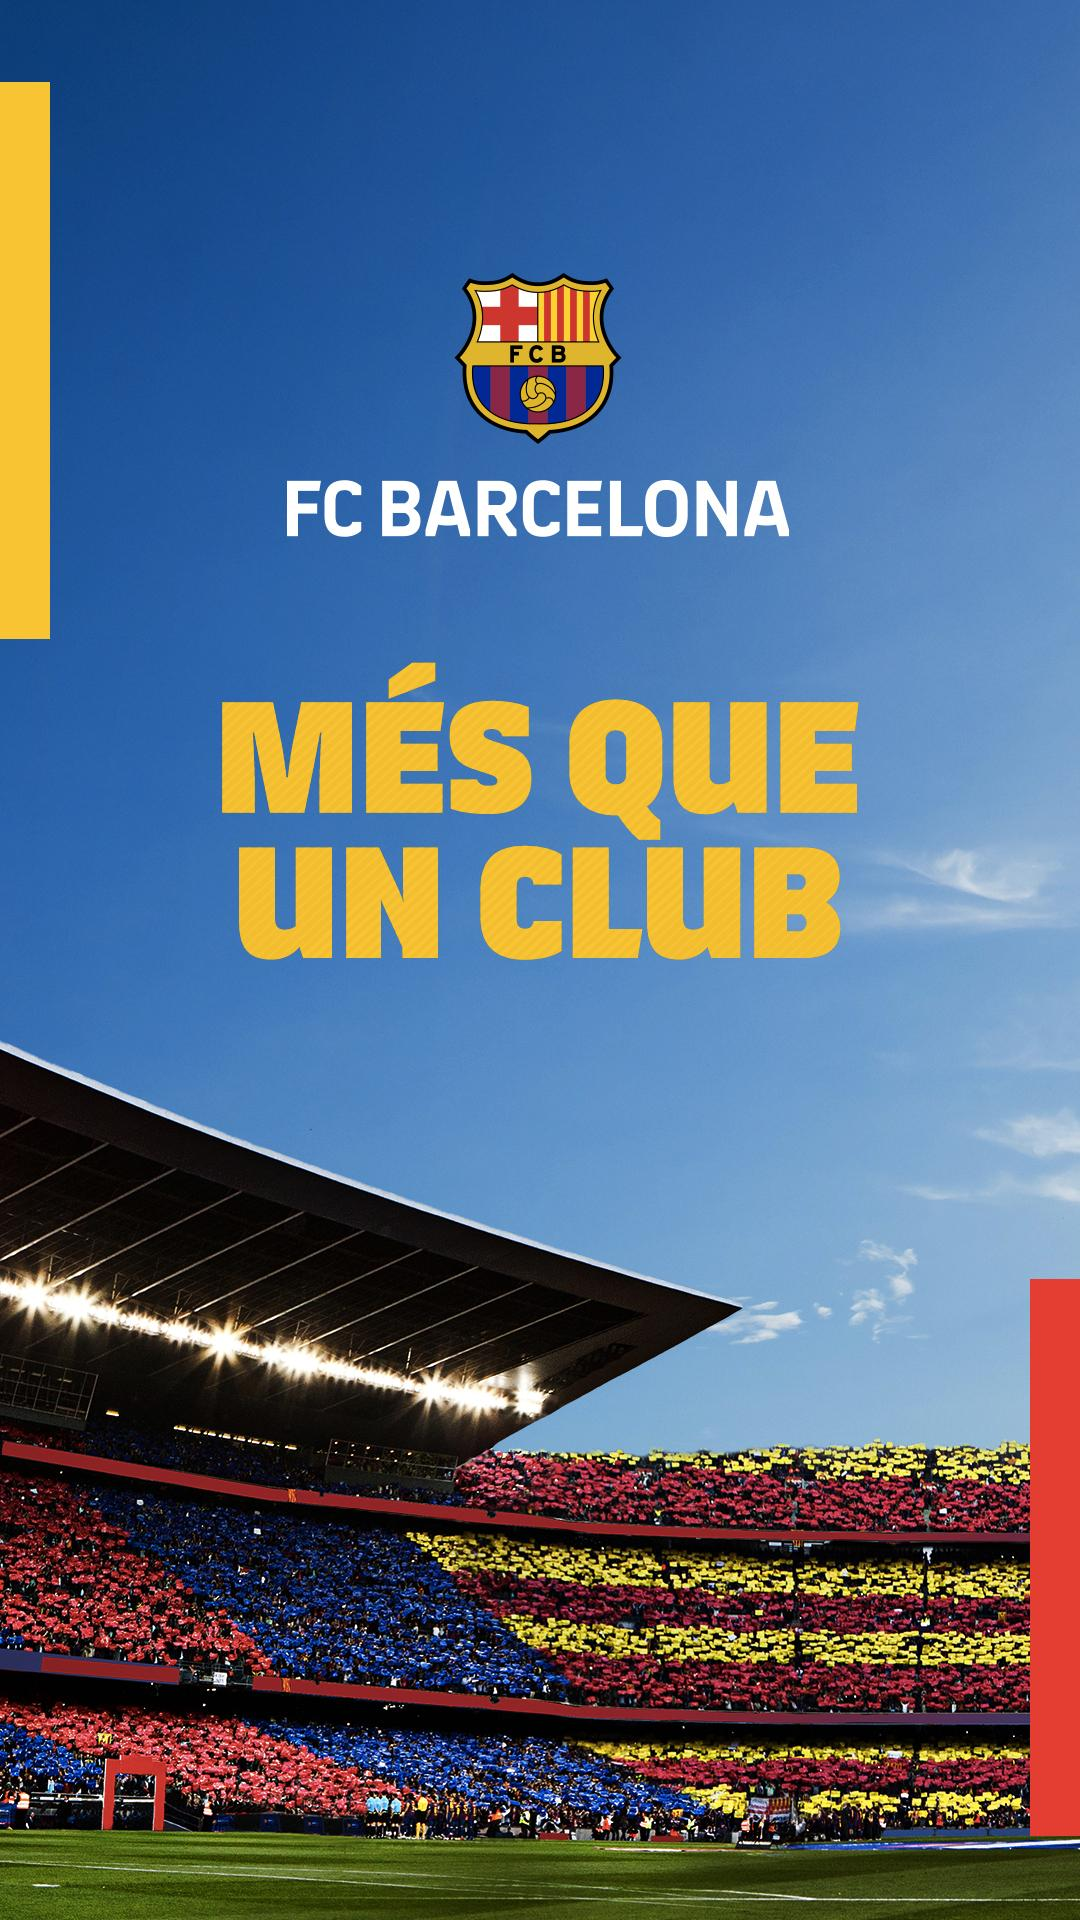 Culers Barca Wallpapers Fc Barcelona Official Channel